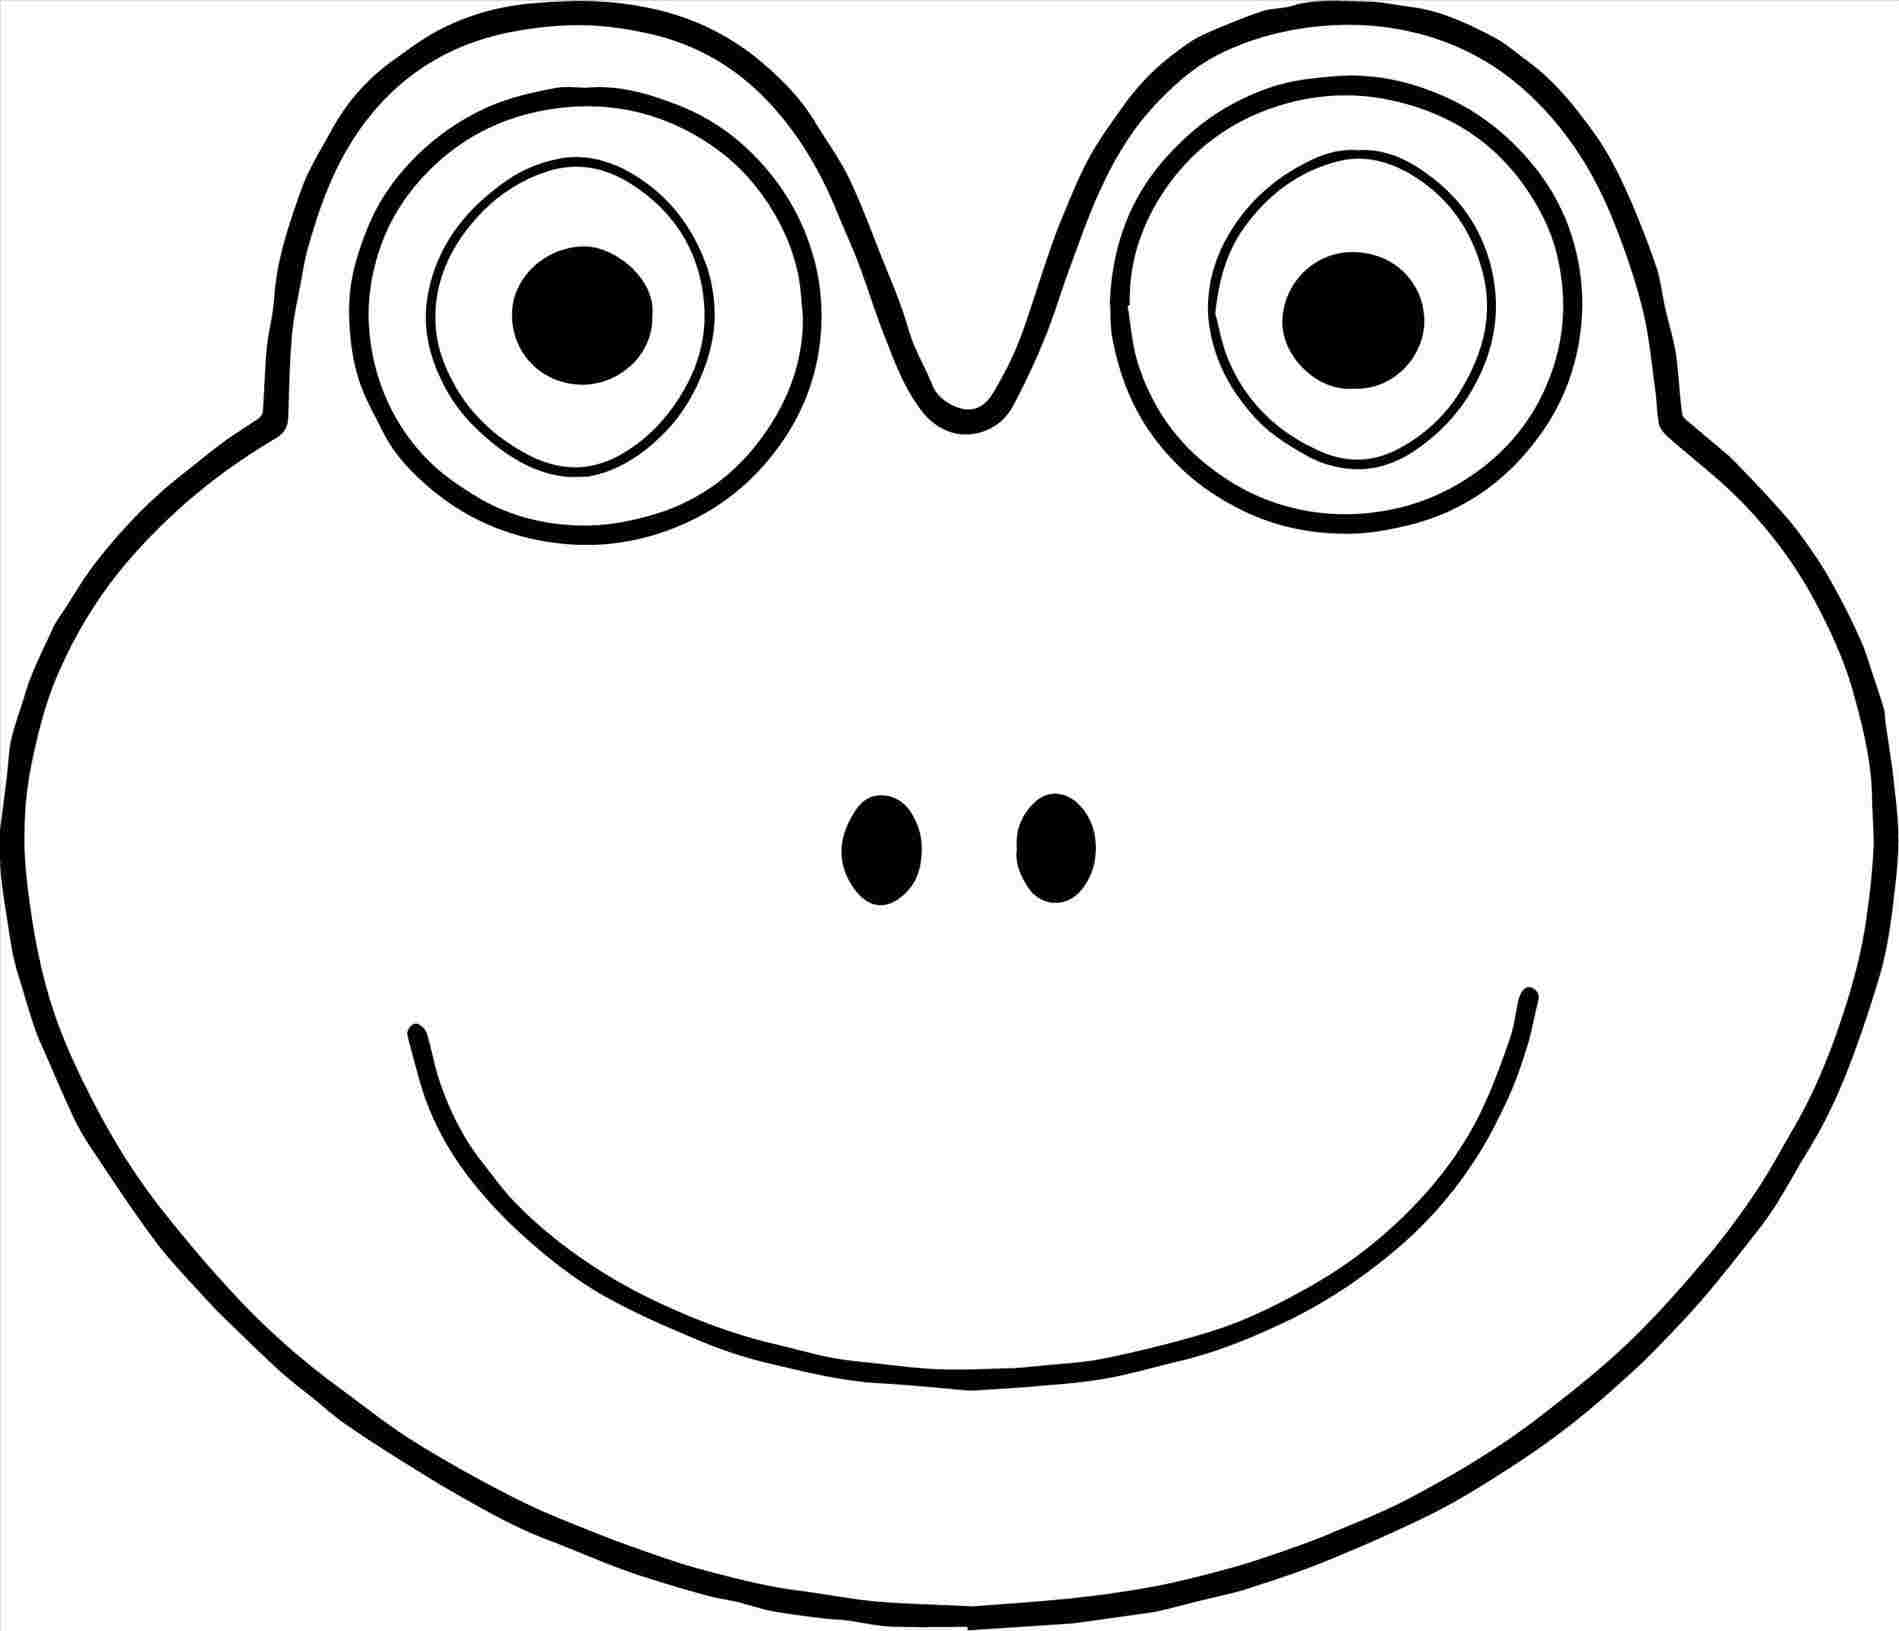 frog face coloring page frog coloring pages getcoloringpagescom coloring page face frog